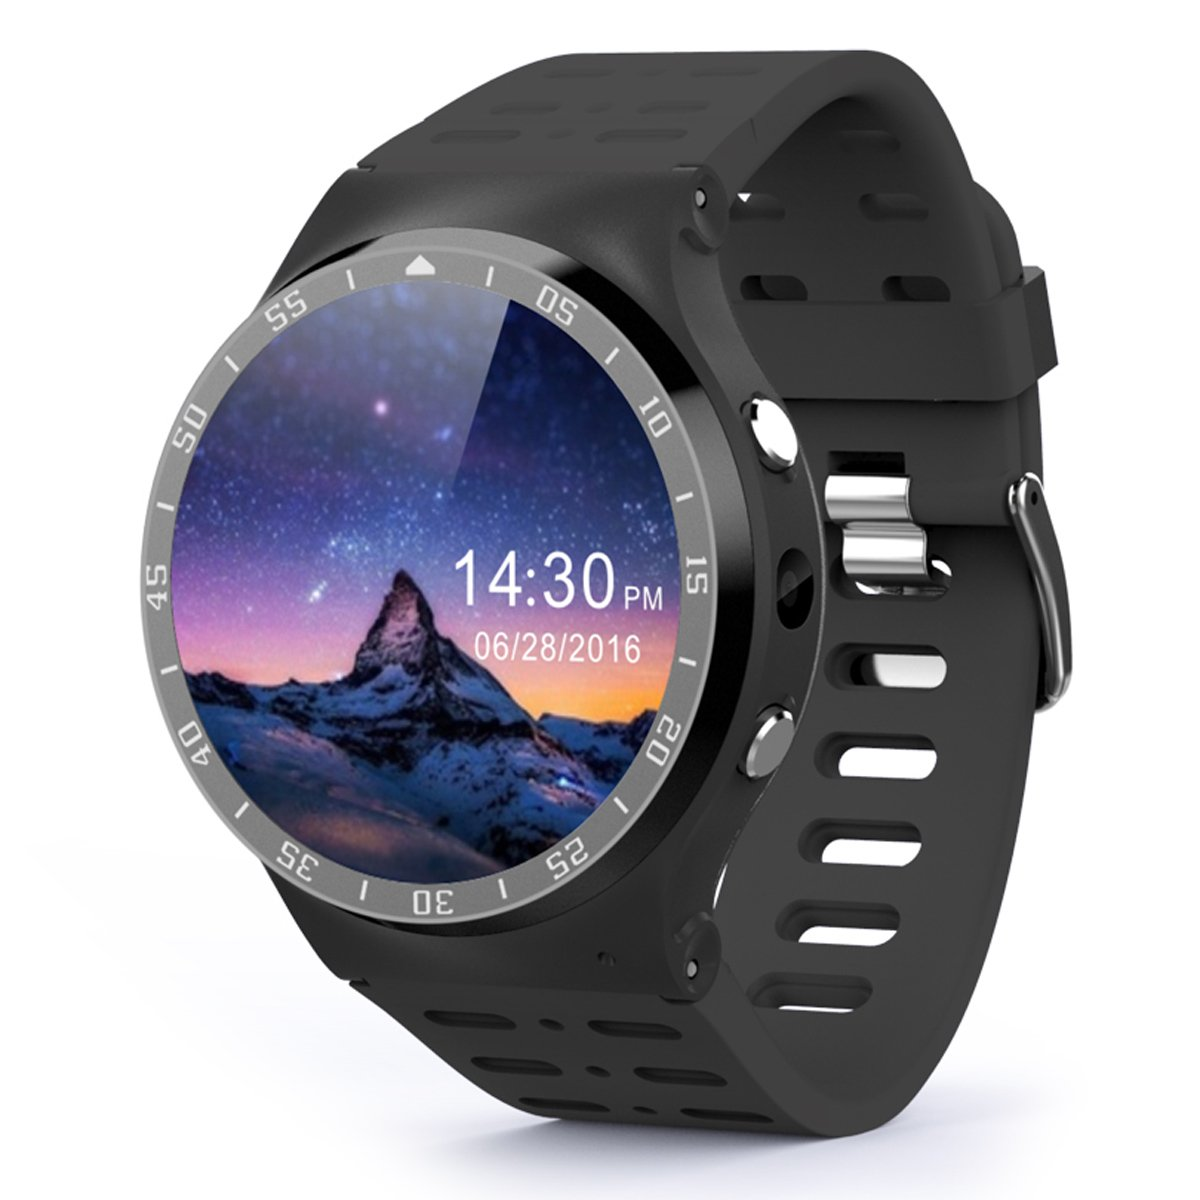 Android 5.1 Smart Watch Phone w/ 8GB ROM - Black